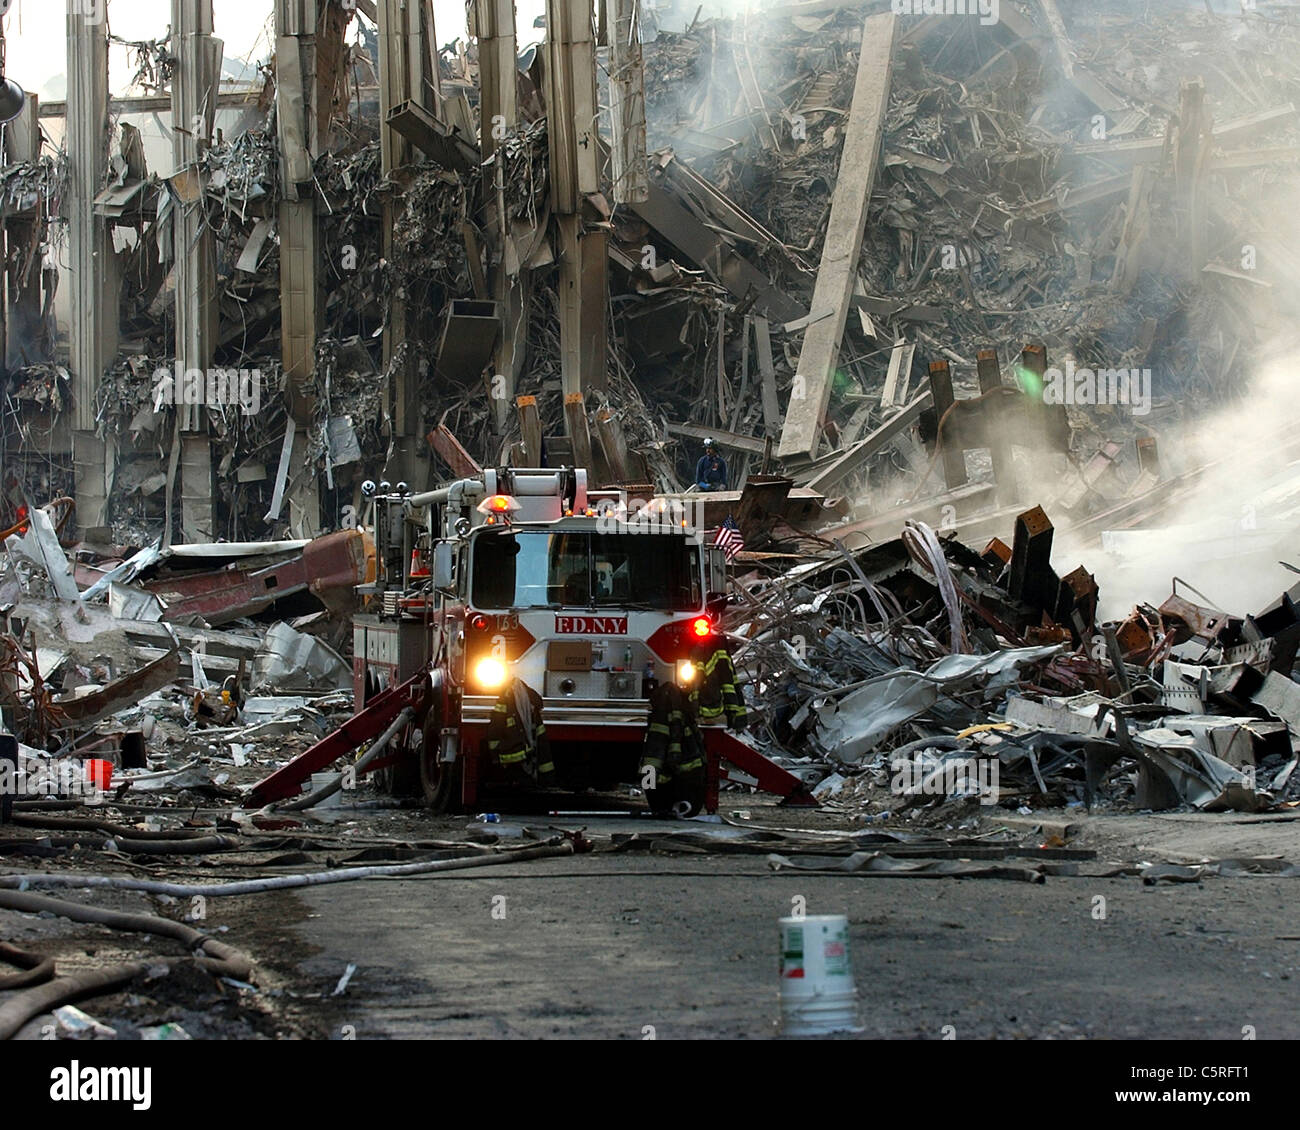 Fire truck at the ground zero of the World Trade Center following the Sept 11 terror attacks - Stock Image